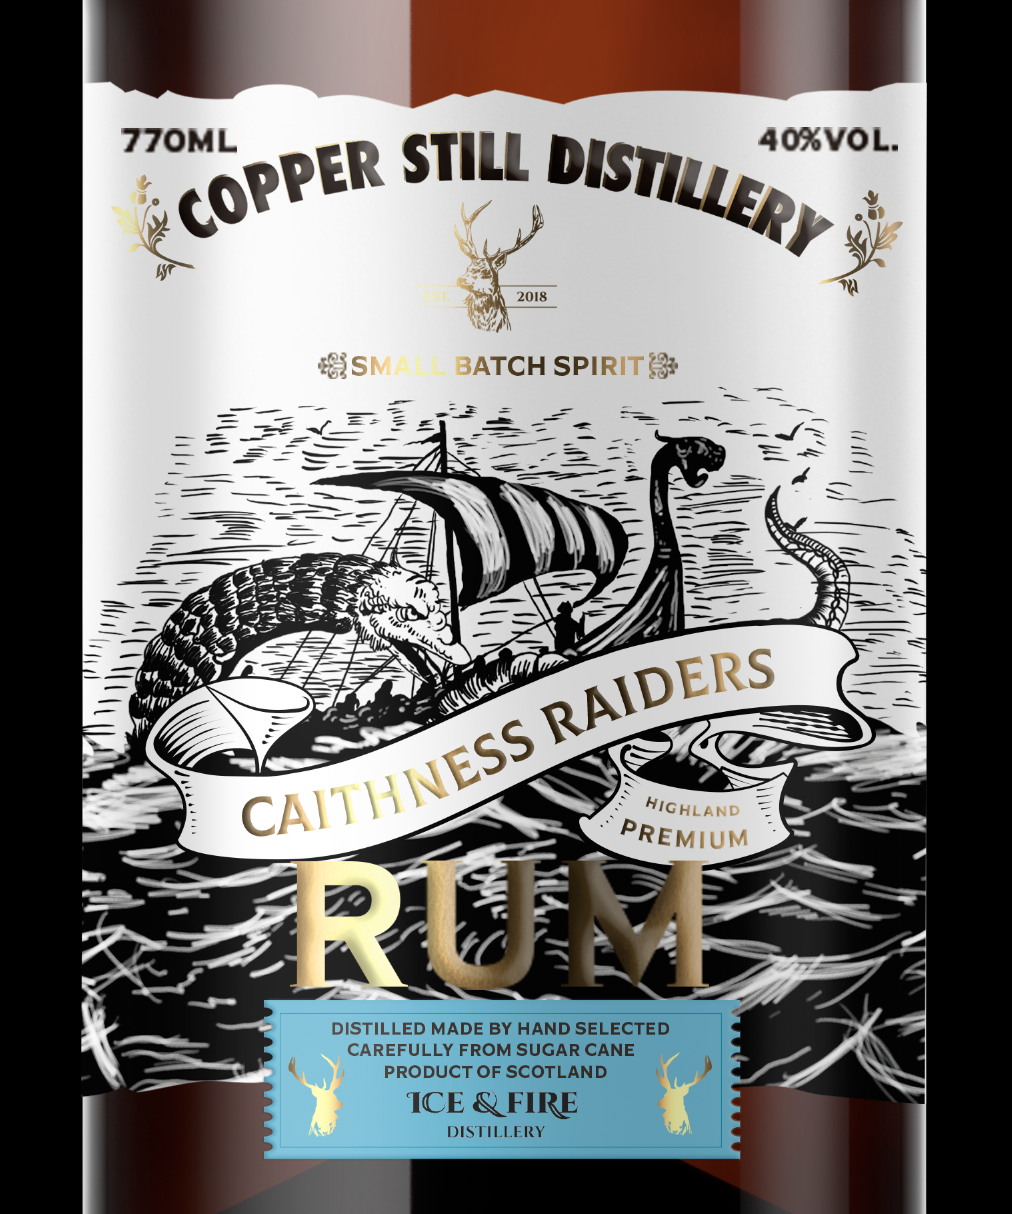 Caithness Raiders Rum Packaging Design, Born from the Heart of the Sea / World Brand and Packaging Design Society